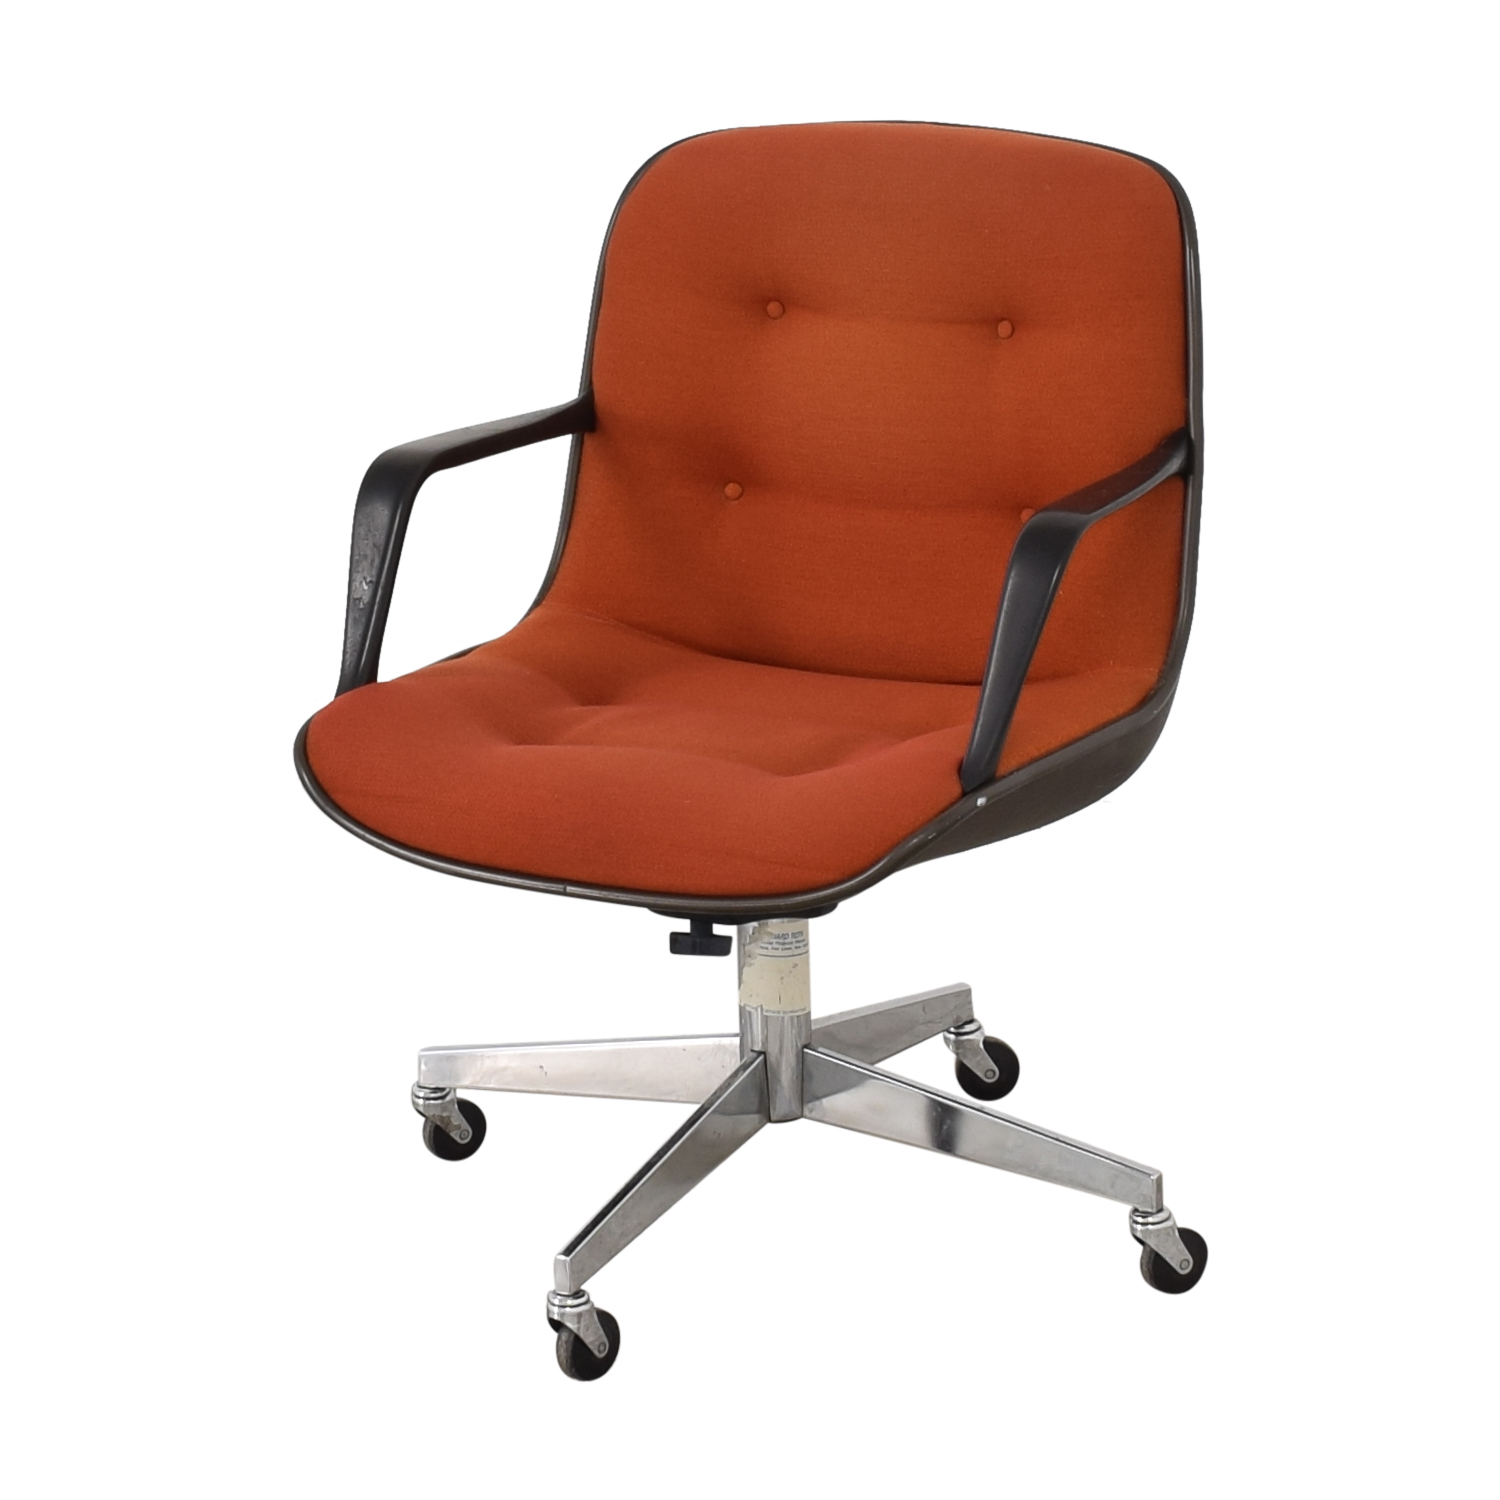 Steelcase Steelcase Mid Century Modern Office Chair second hand